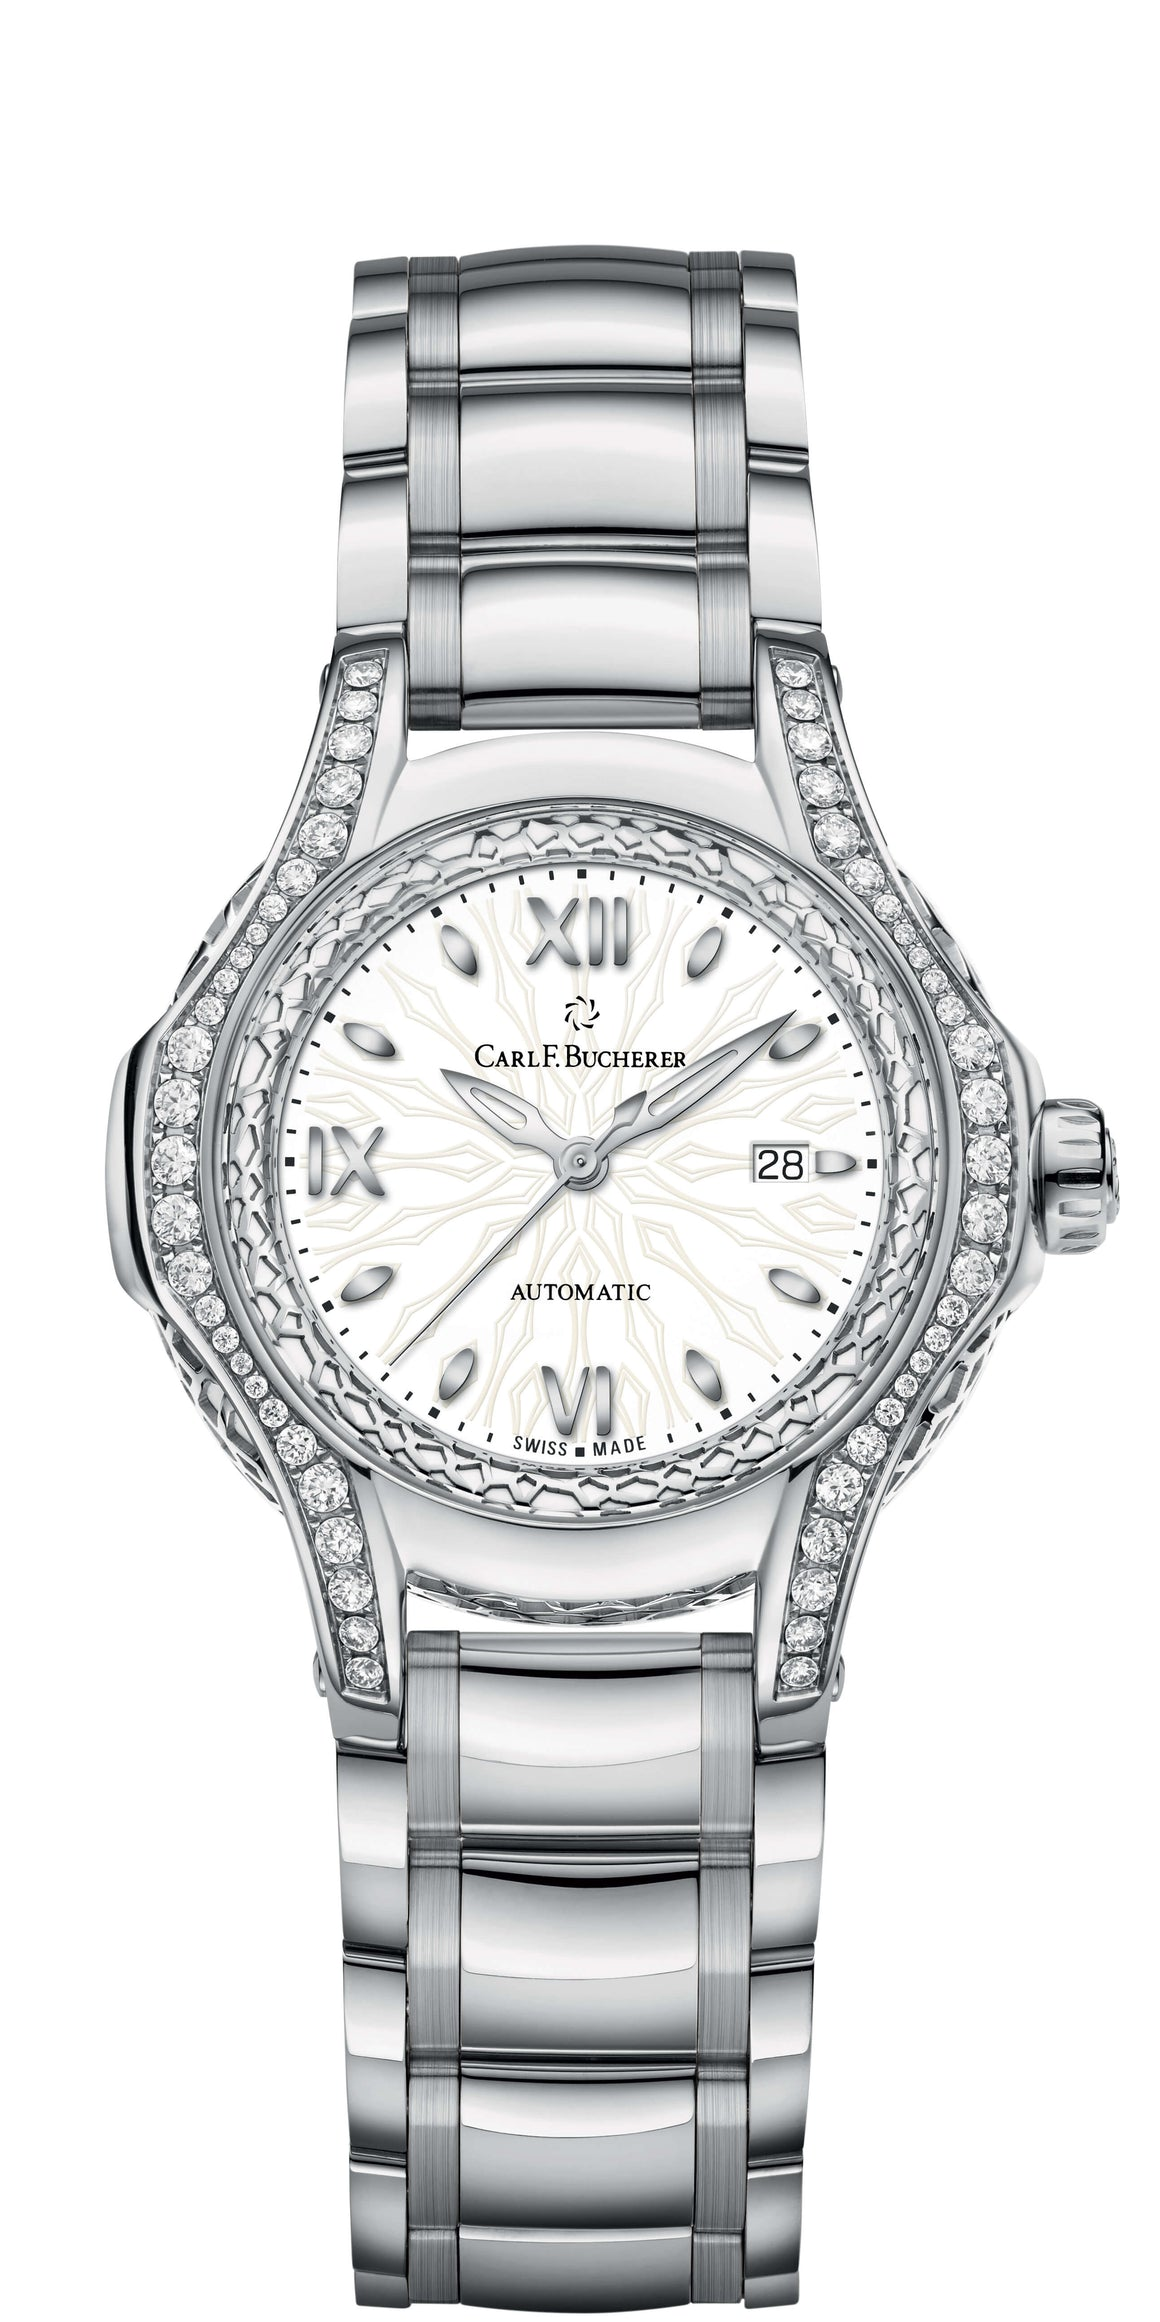 C.F. Bucherer Pathos Diva Watch